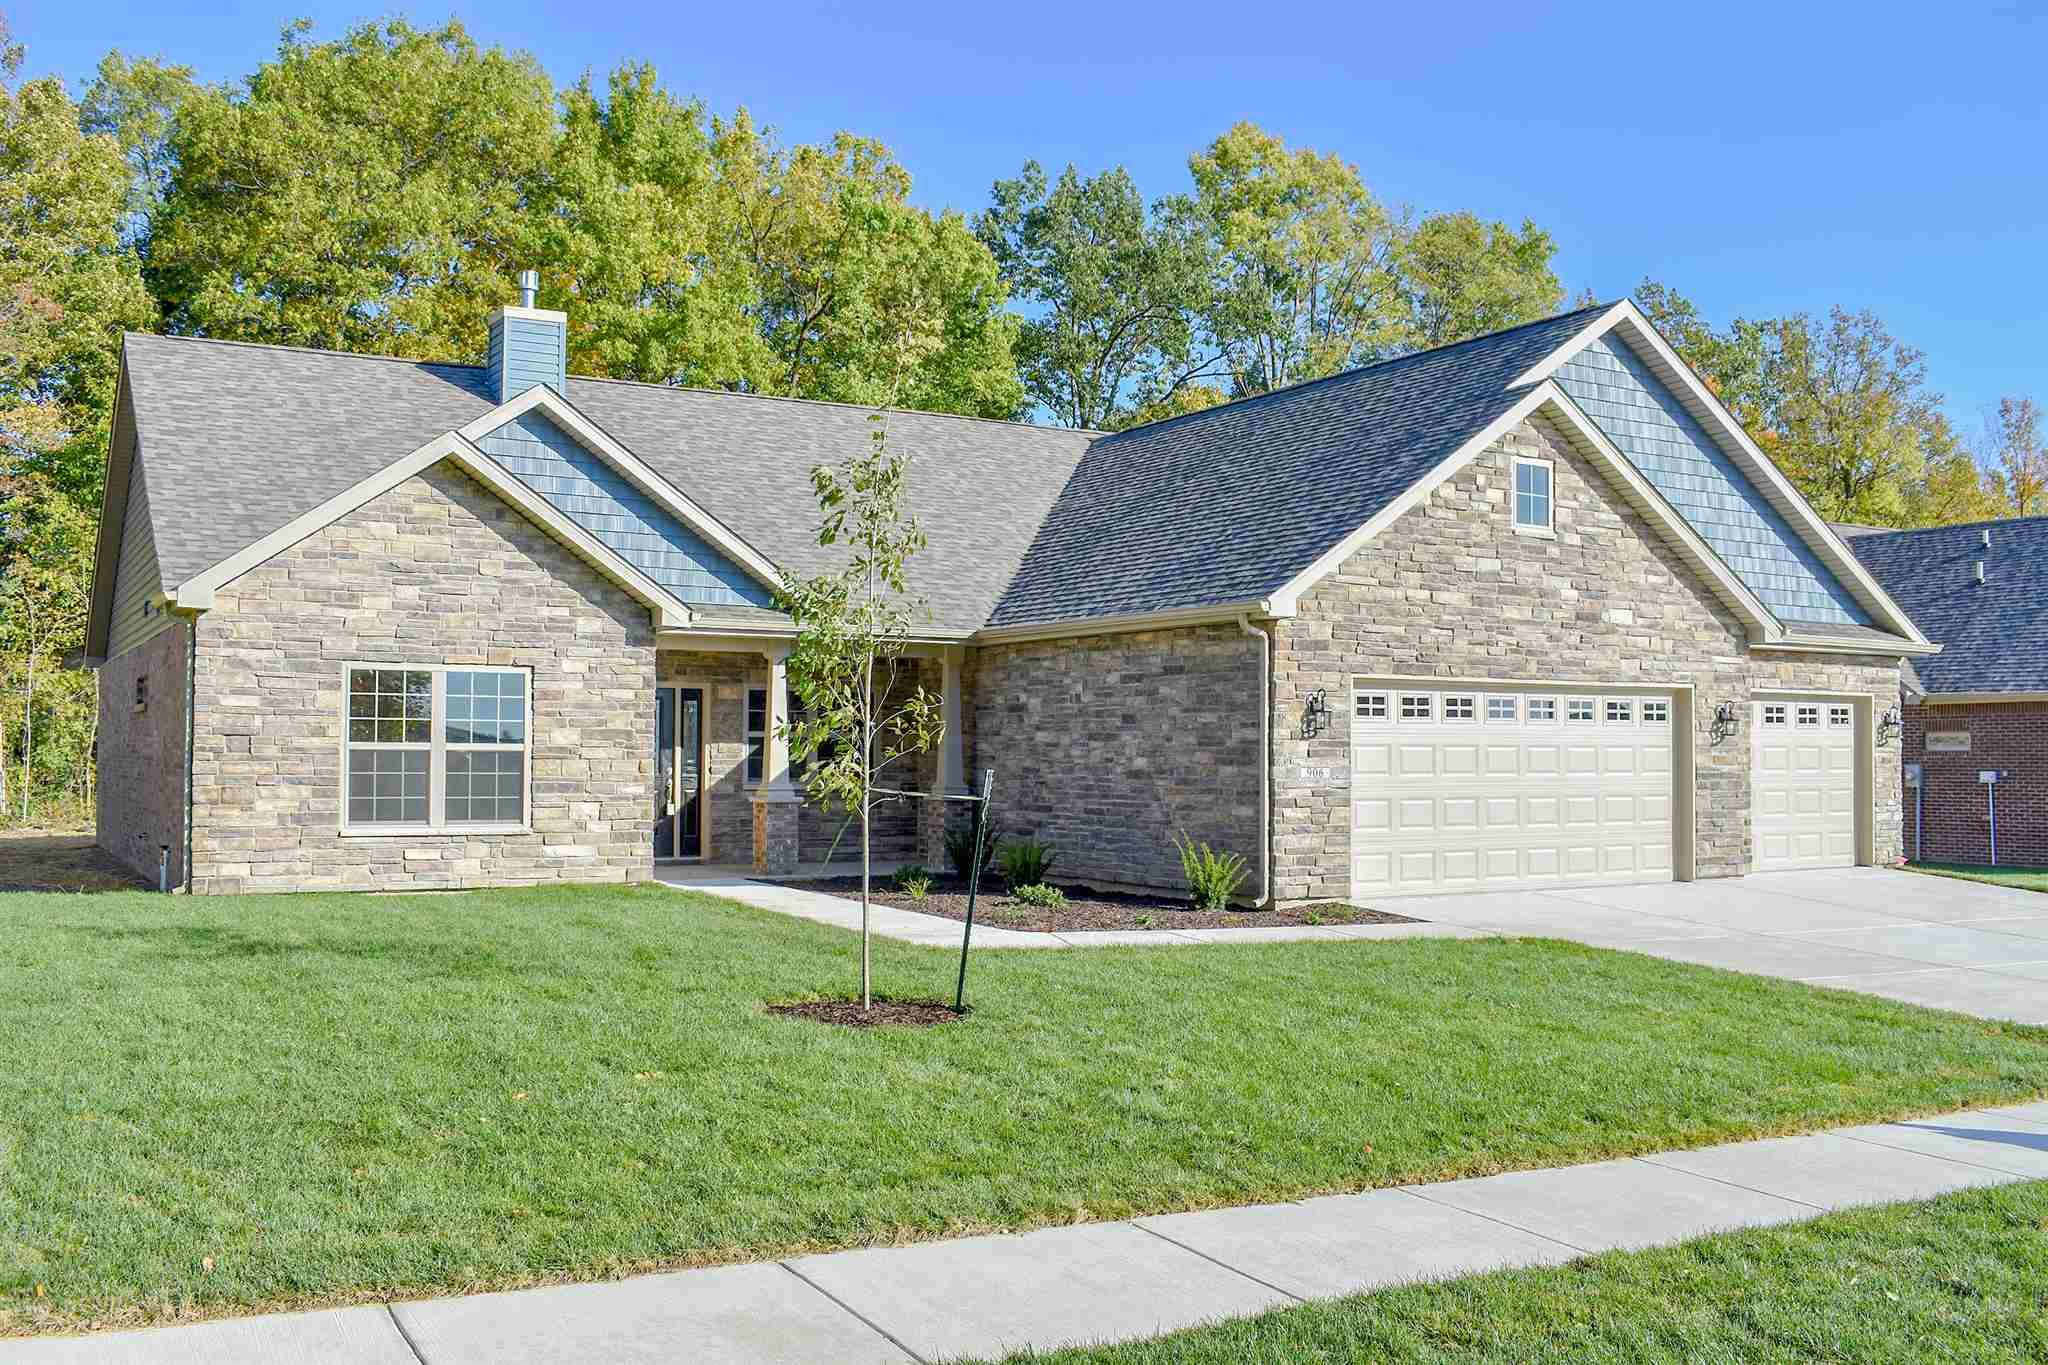 906 Bluegrass Trail, Kokomo, IN